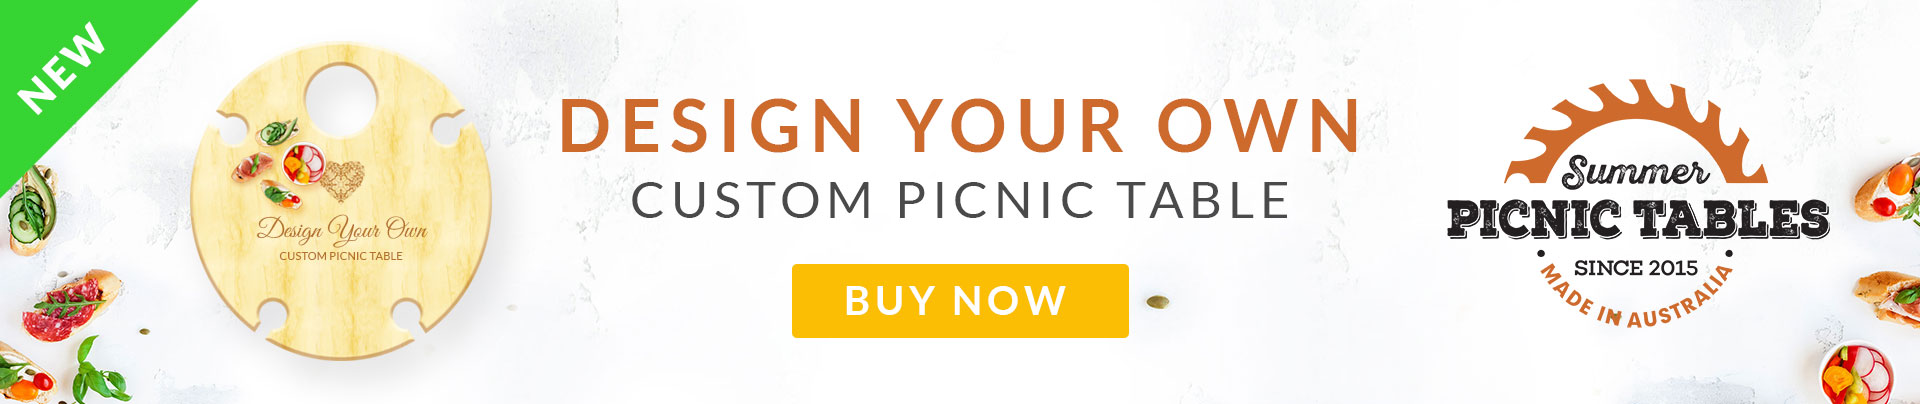 Design Your Own Custom Picnic Table